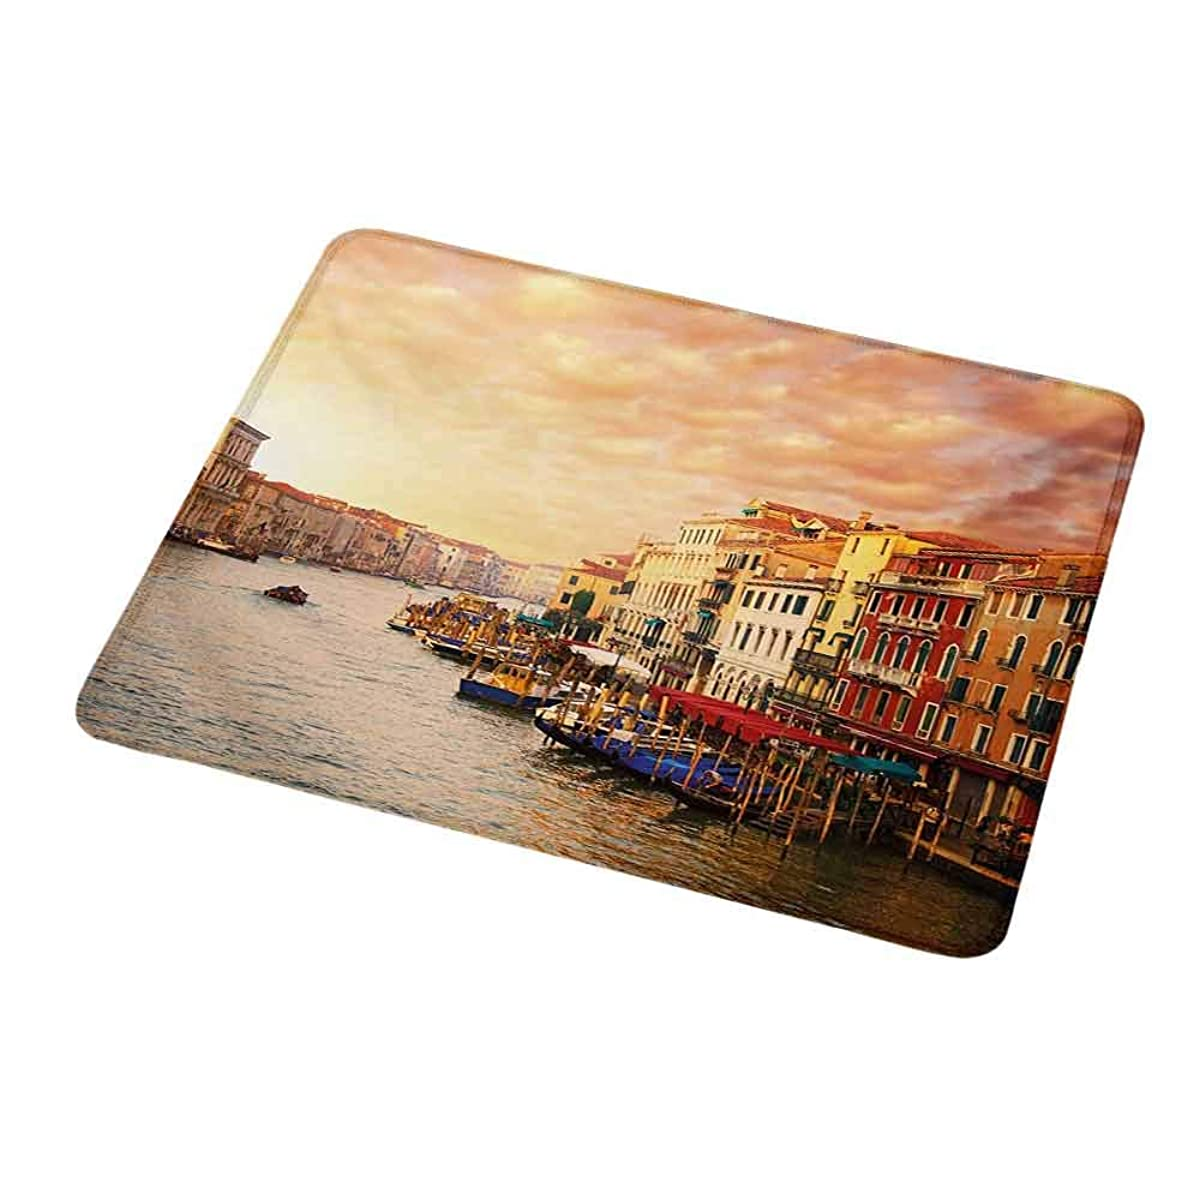 Gaming Mouse Pad Custom Design Mat Scenery,Venezia City Italian Landscape with Old Ancient Houses Gondollas and Spikes Image,Non-Slip Rubber Base Ideal for Keyboard,PC and Laptop 9.8